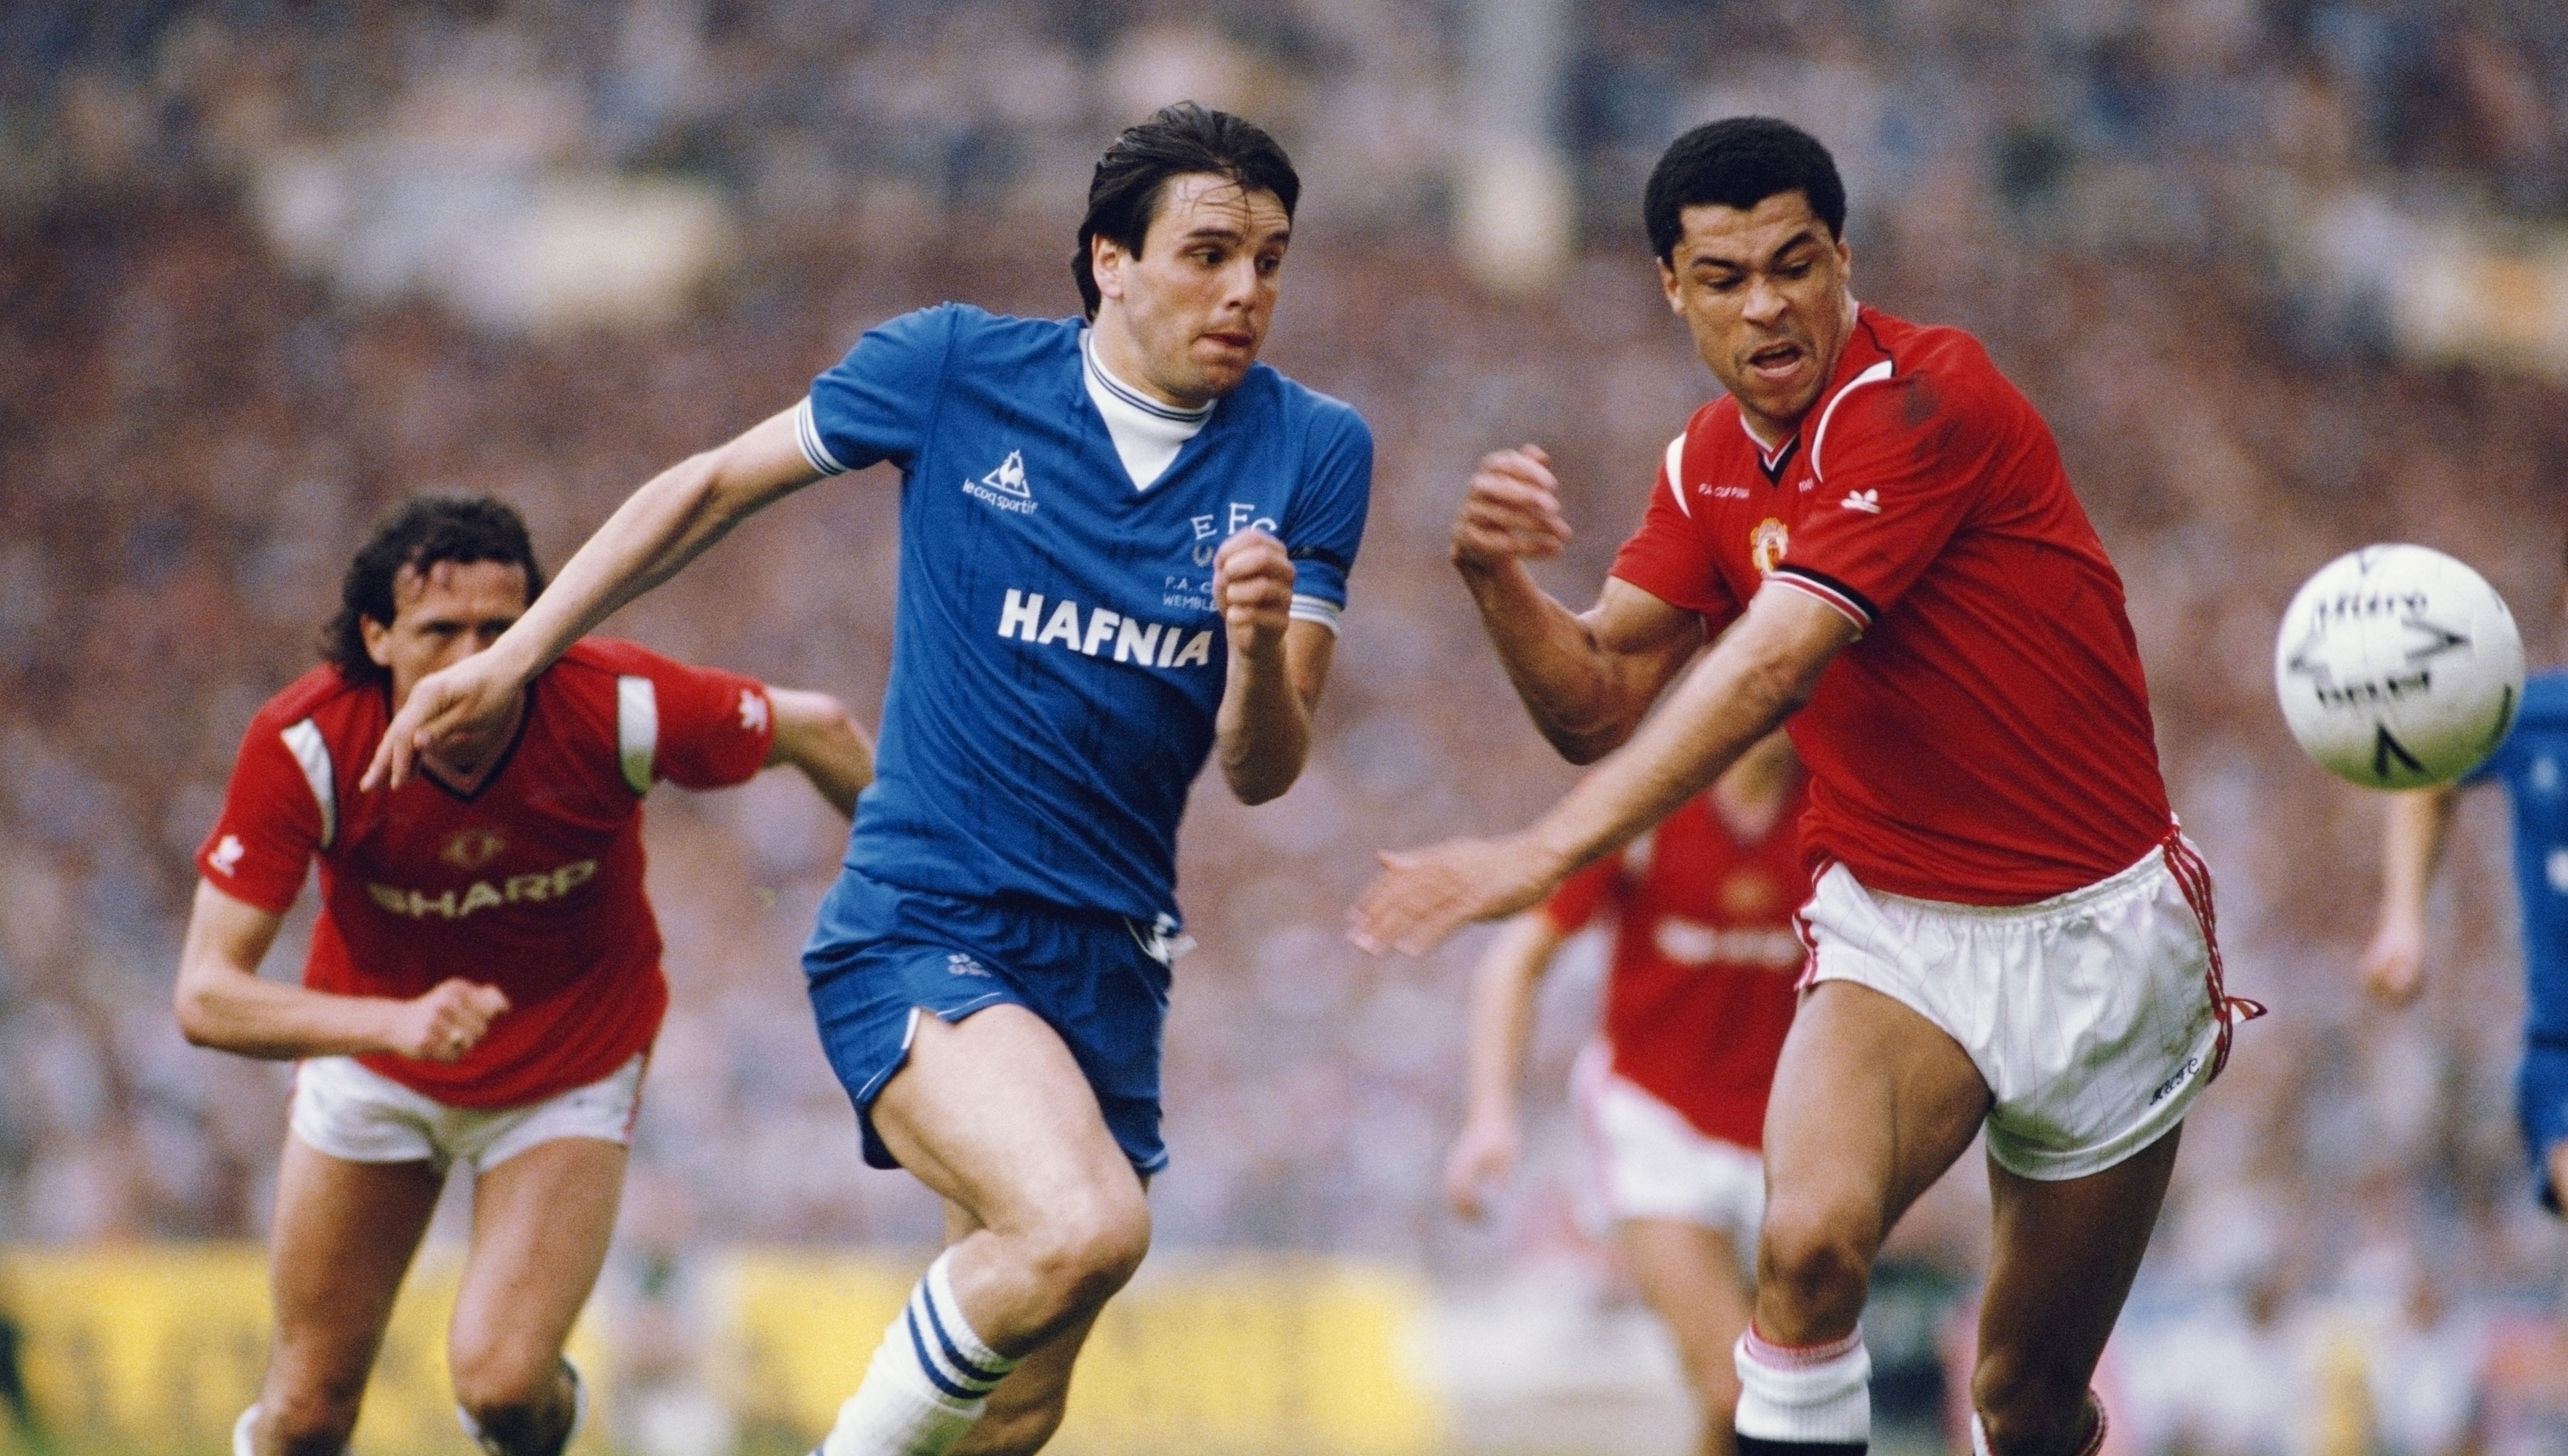 1985-fa-cup-final-everton-v-manchester-united.jpg